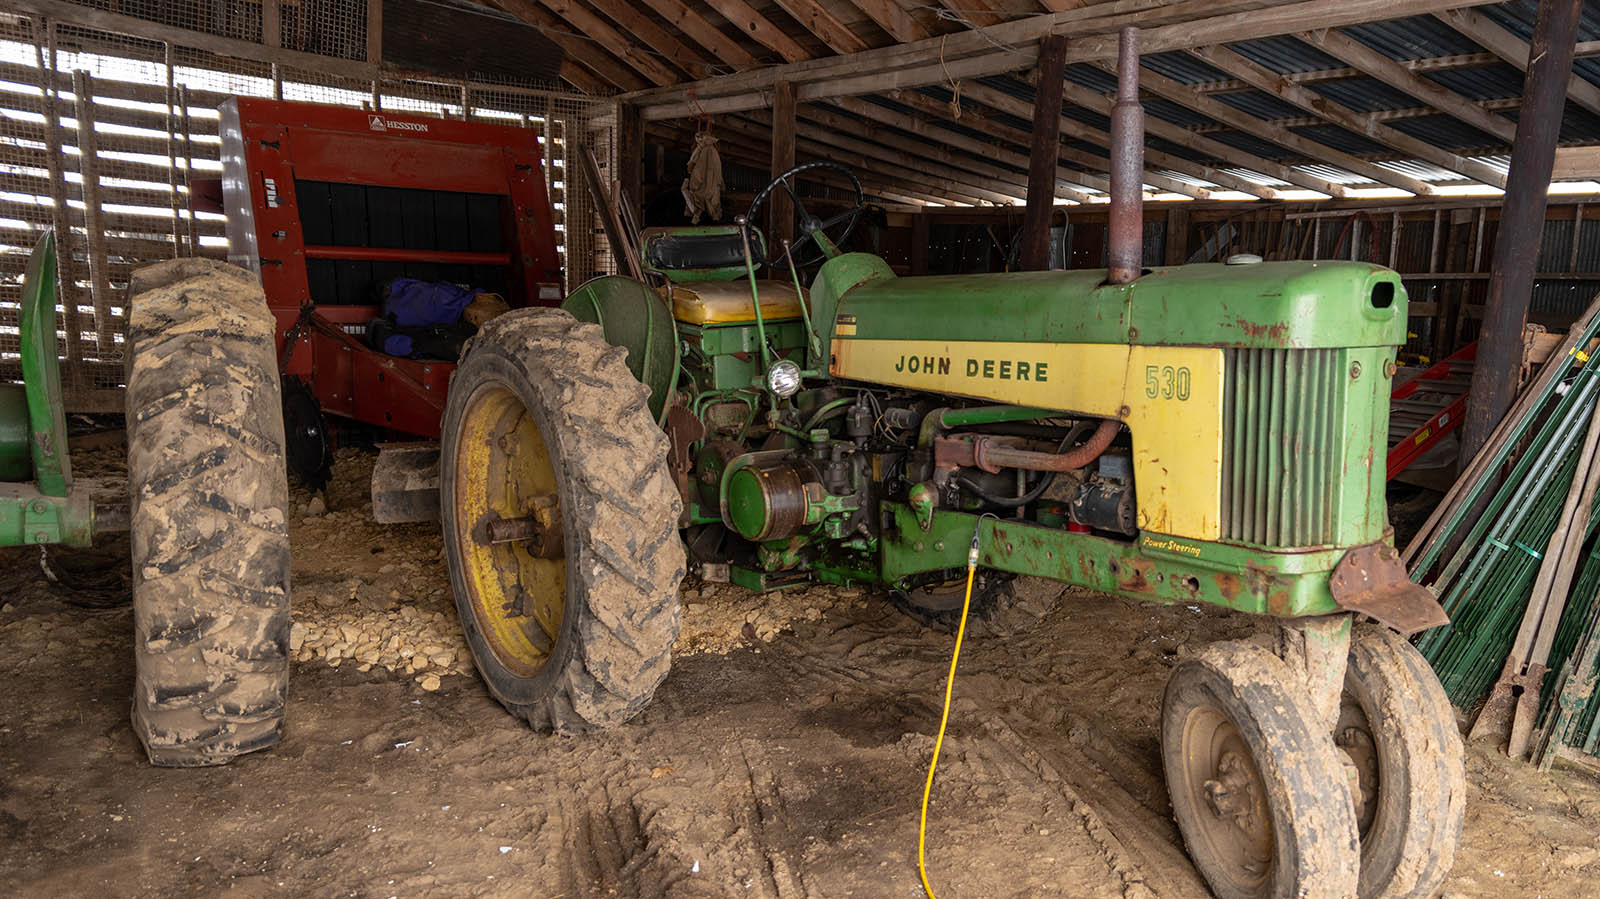 Old green John Deere diesel tractor in the barn with an electrical cord coming out of the engine.